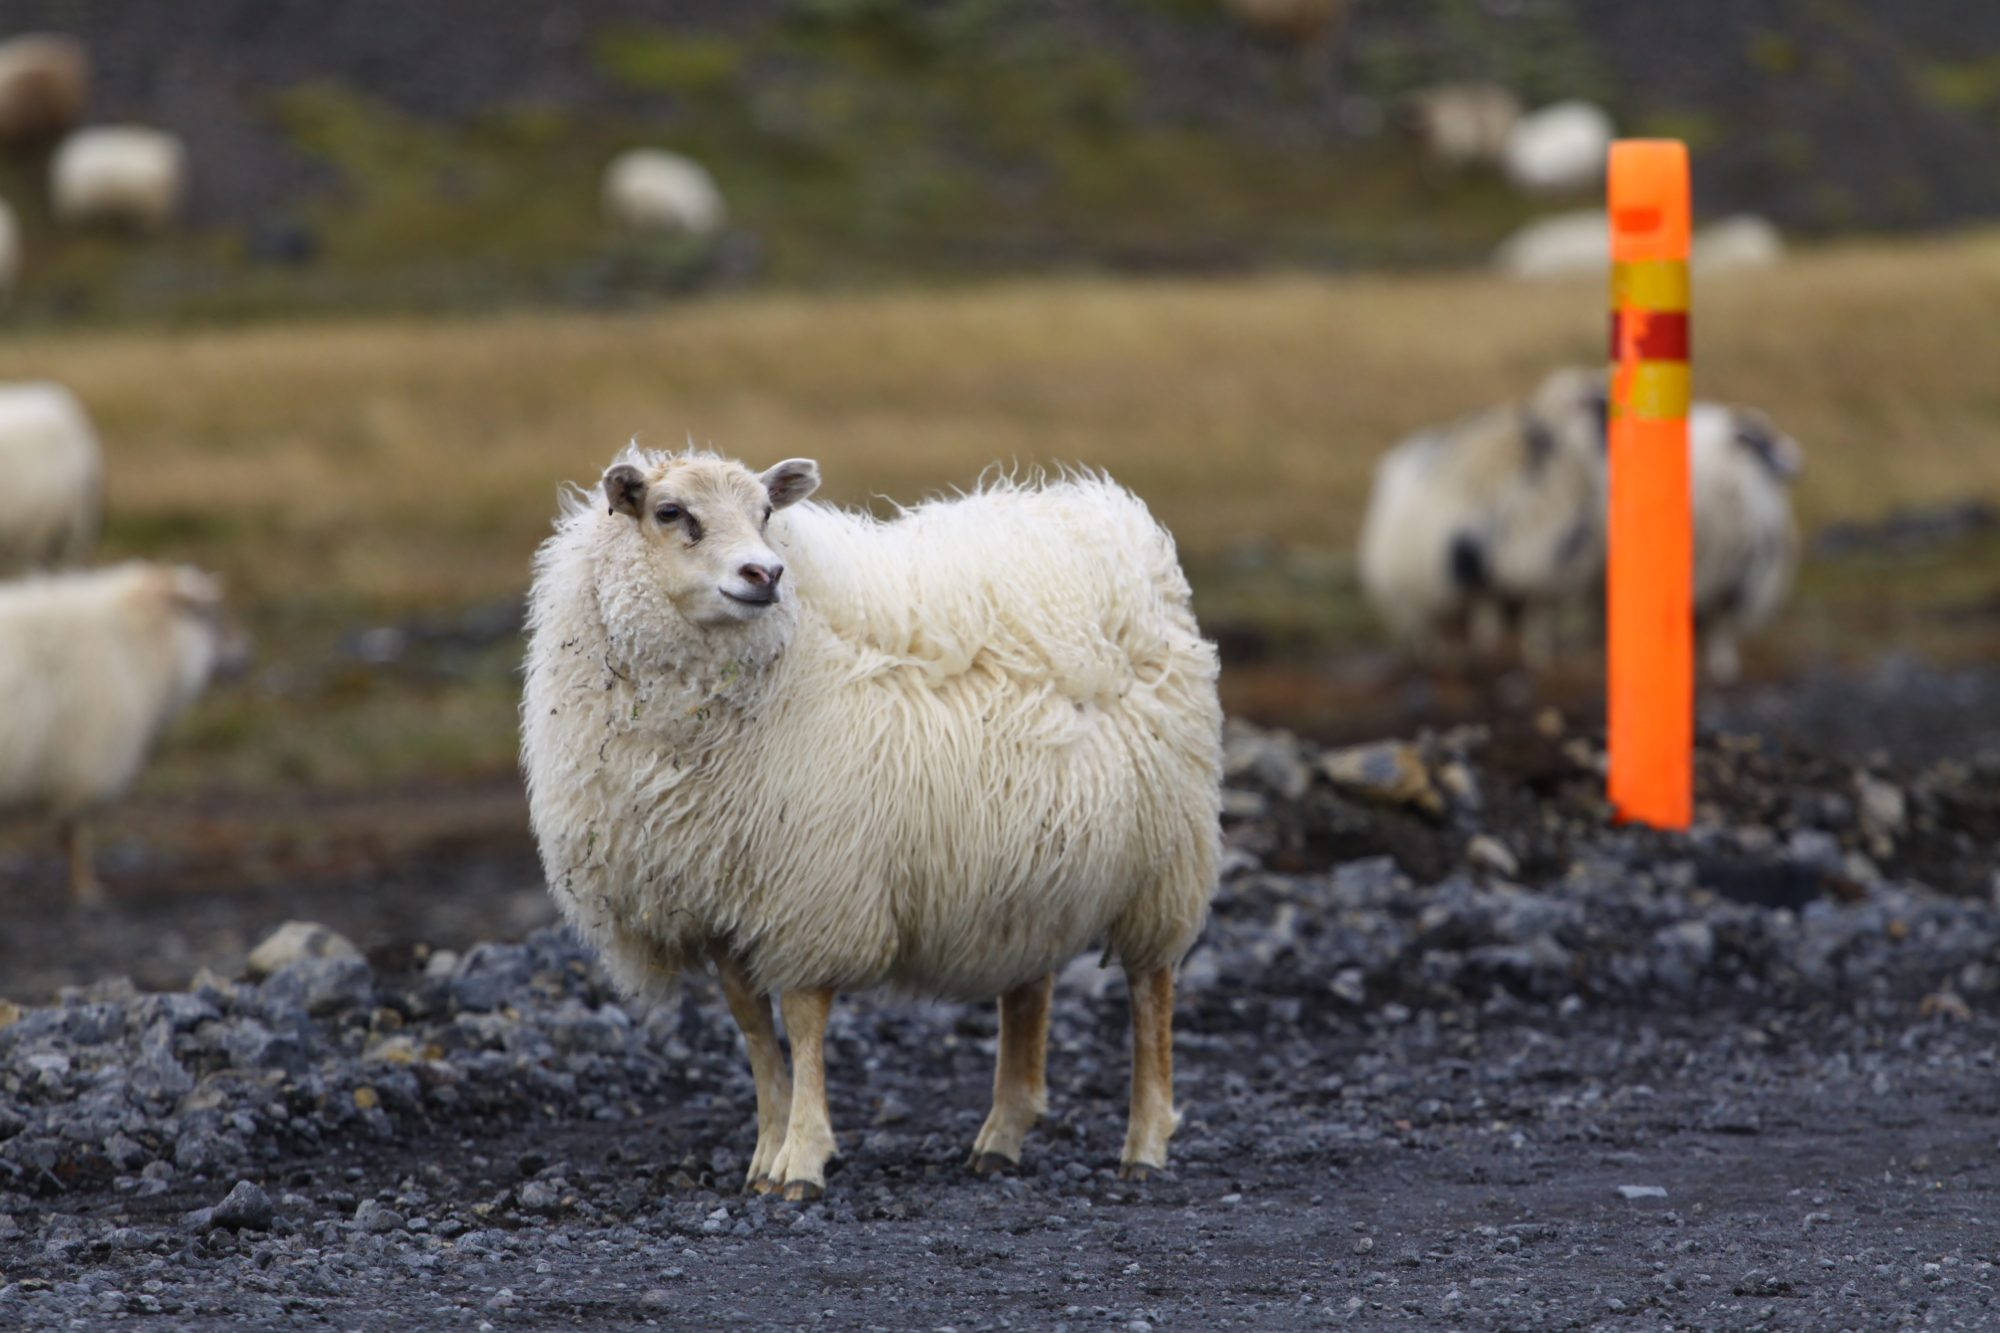 Protest At Icelandic Slaughterhouse Prompts Counter, And Counter-Counter, Protests